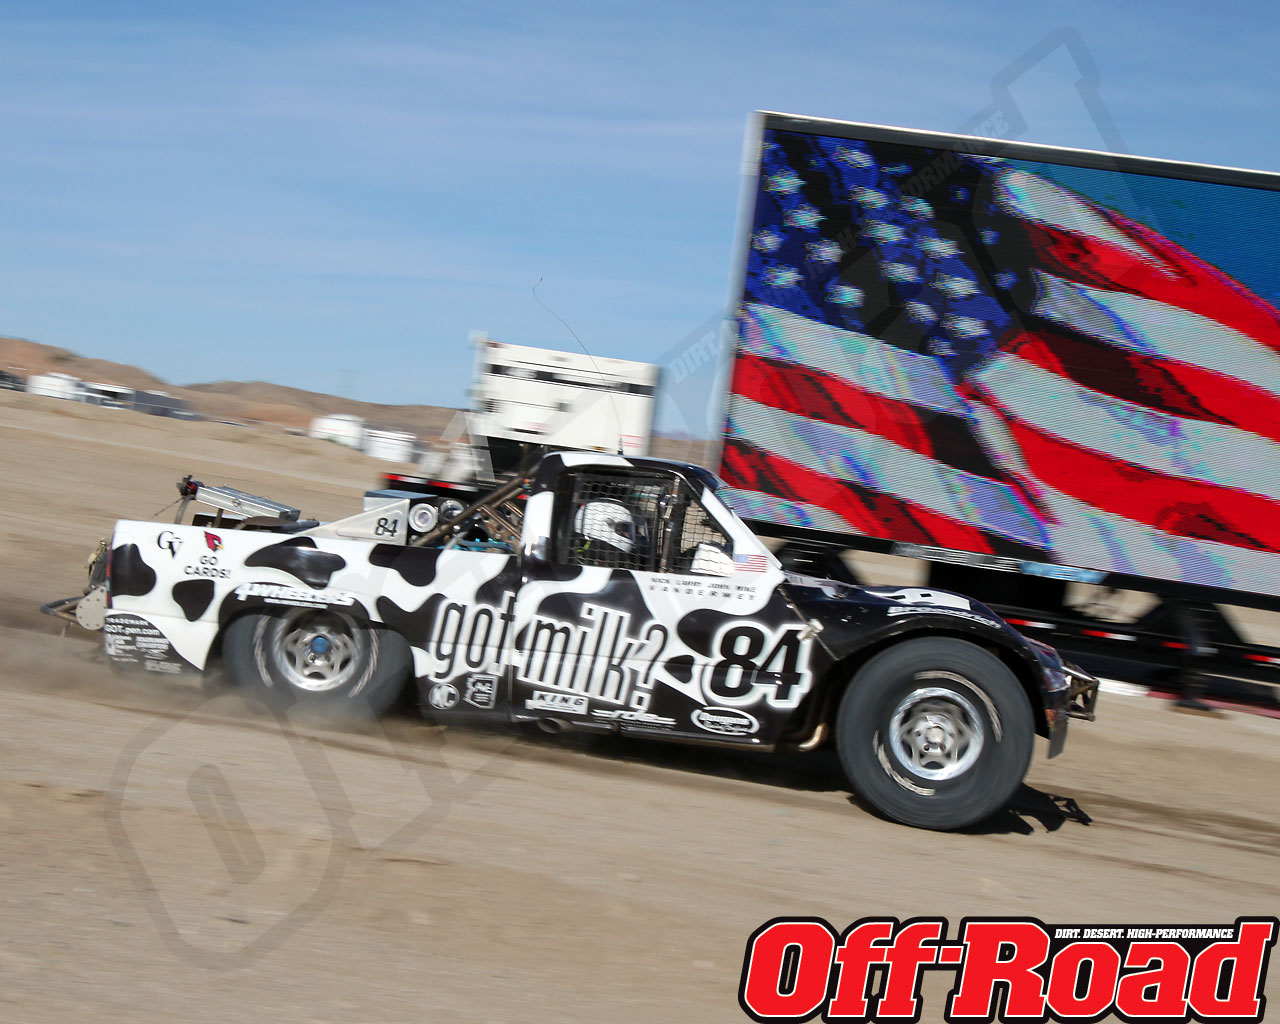 1002or 0586 o+2010 score laughlin desert challenge+trophy truck